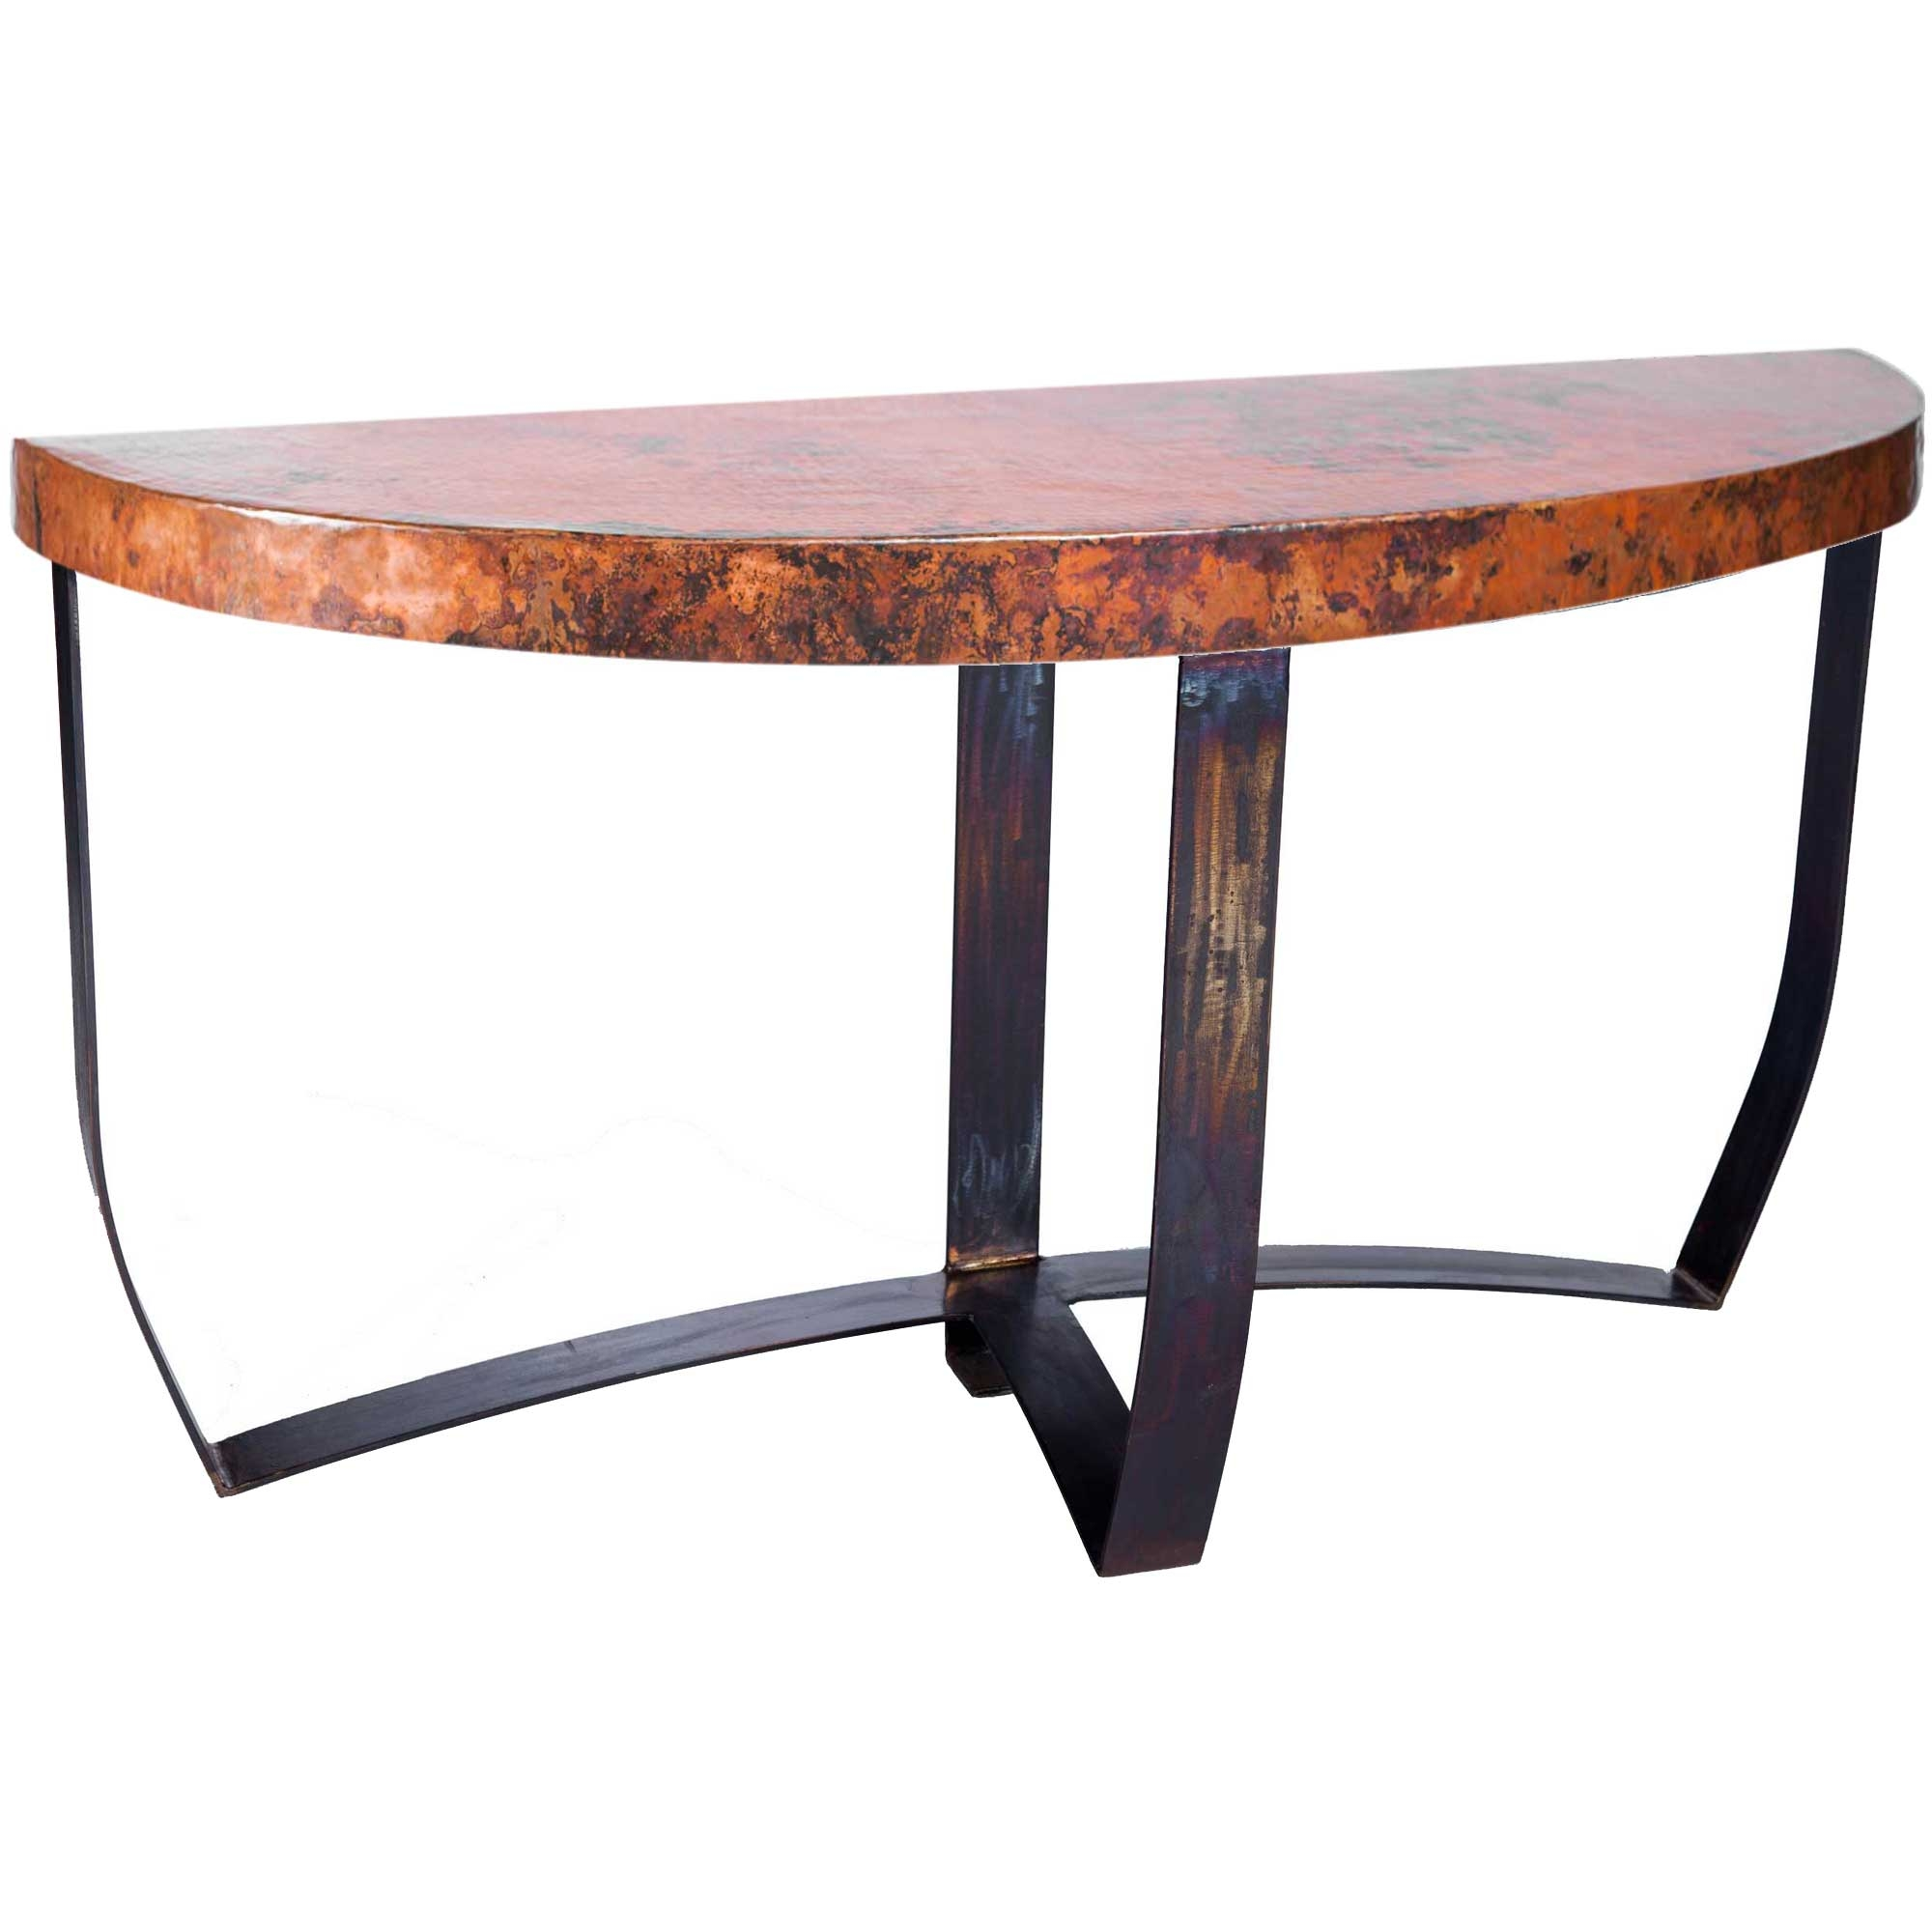 Console table with wrought iron base and hammered copper table top